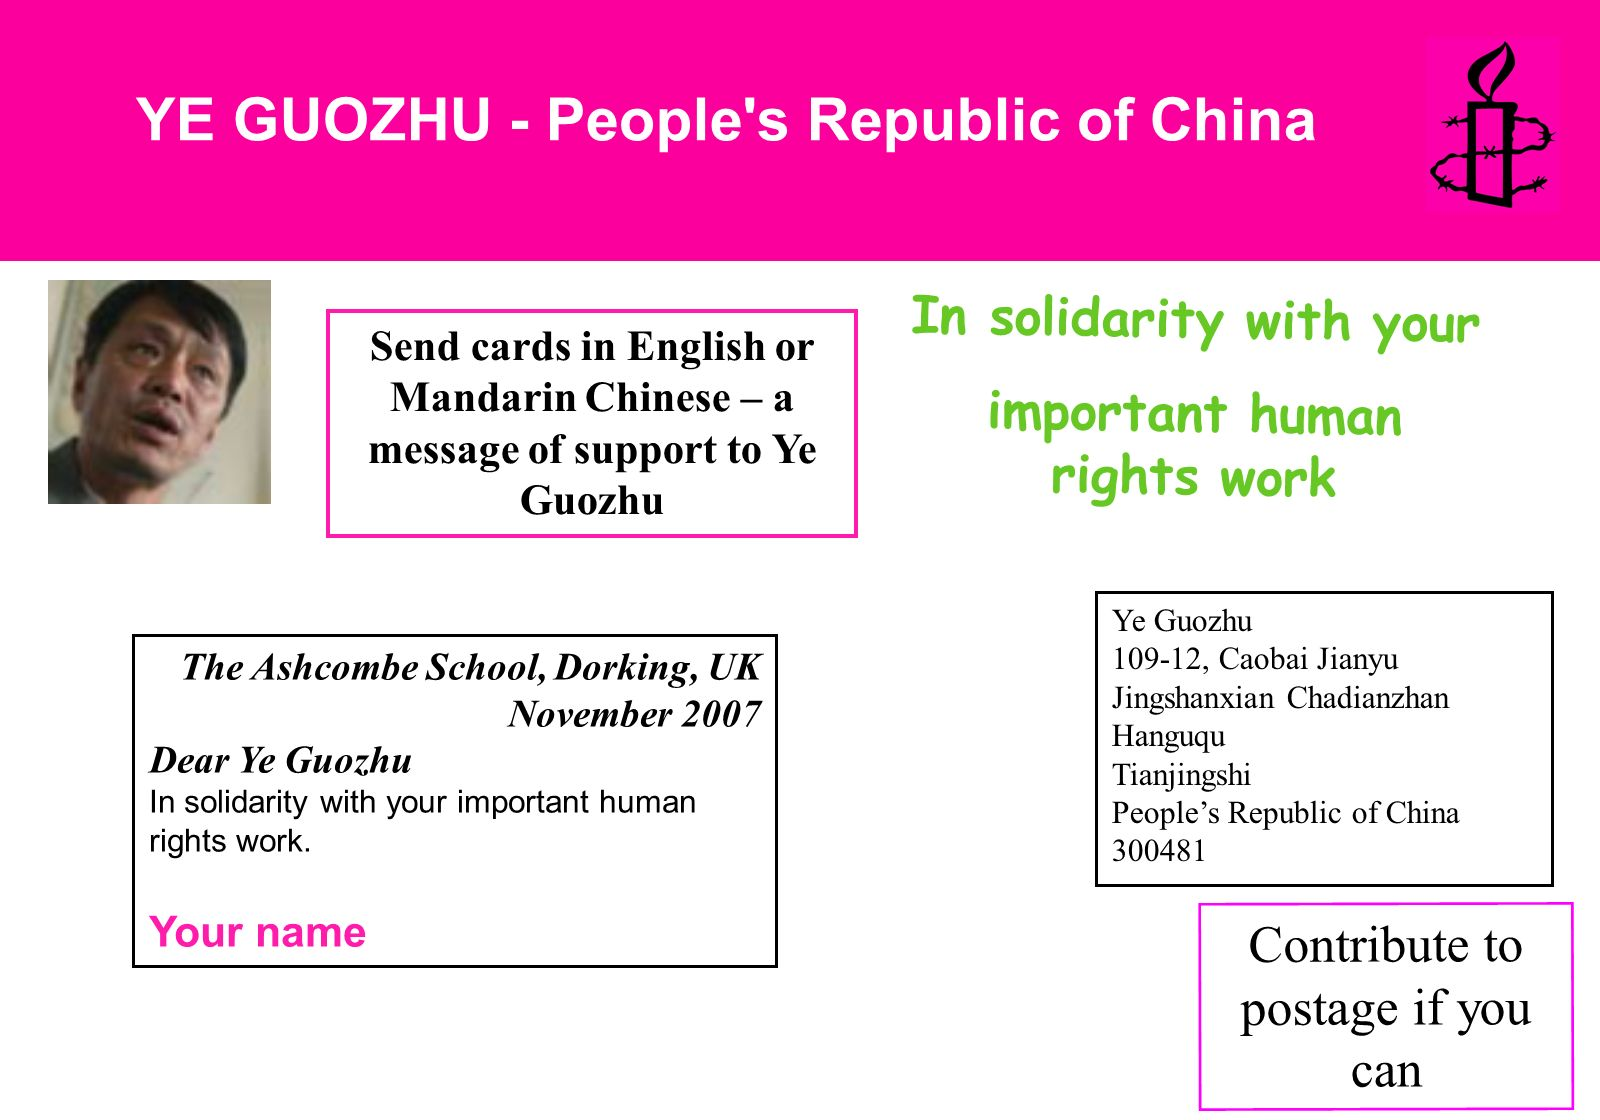 YE GUOZHU - People's Republic of China Send cards in English or Mandarin Chinese – a message of support to Ye Guozhu The Ashcombe School, Dorking, UK